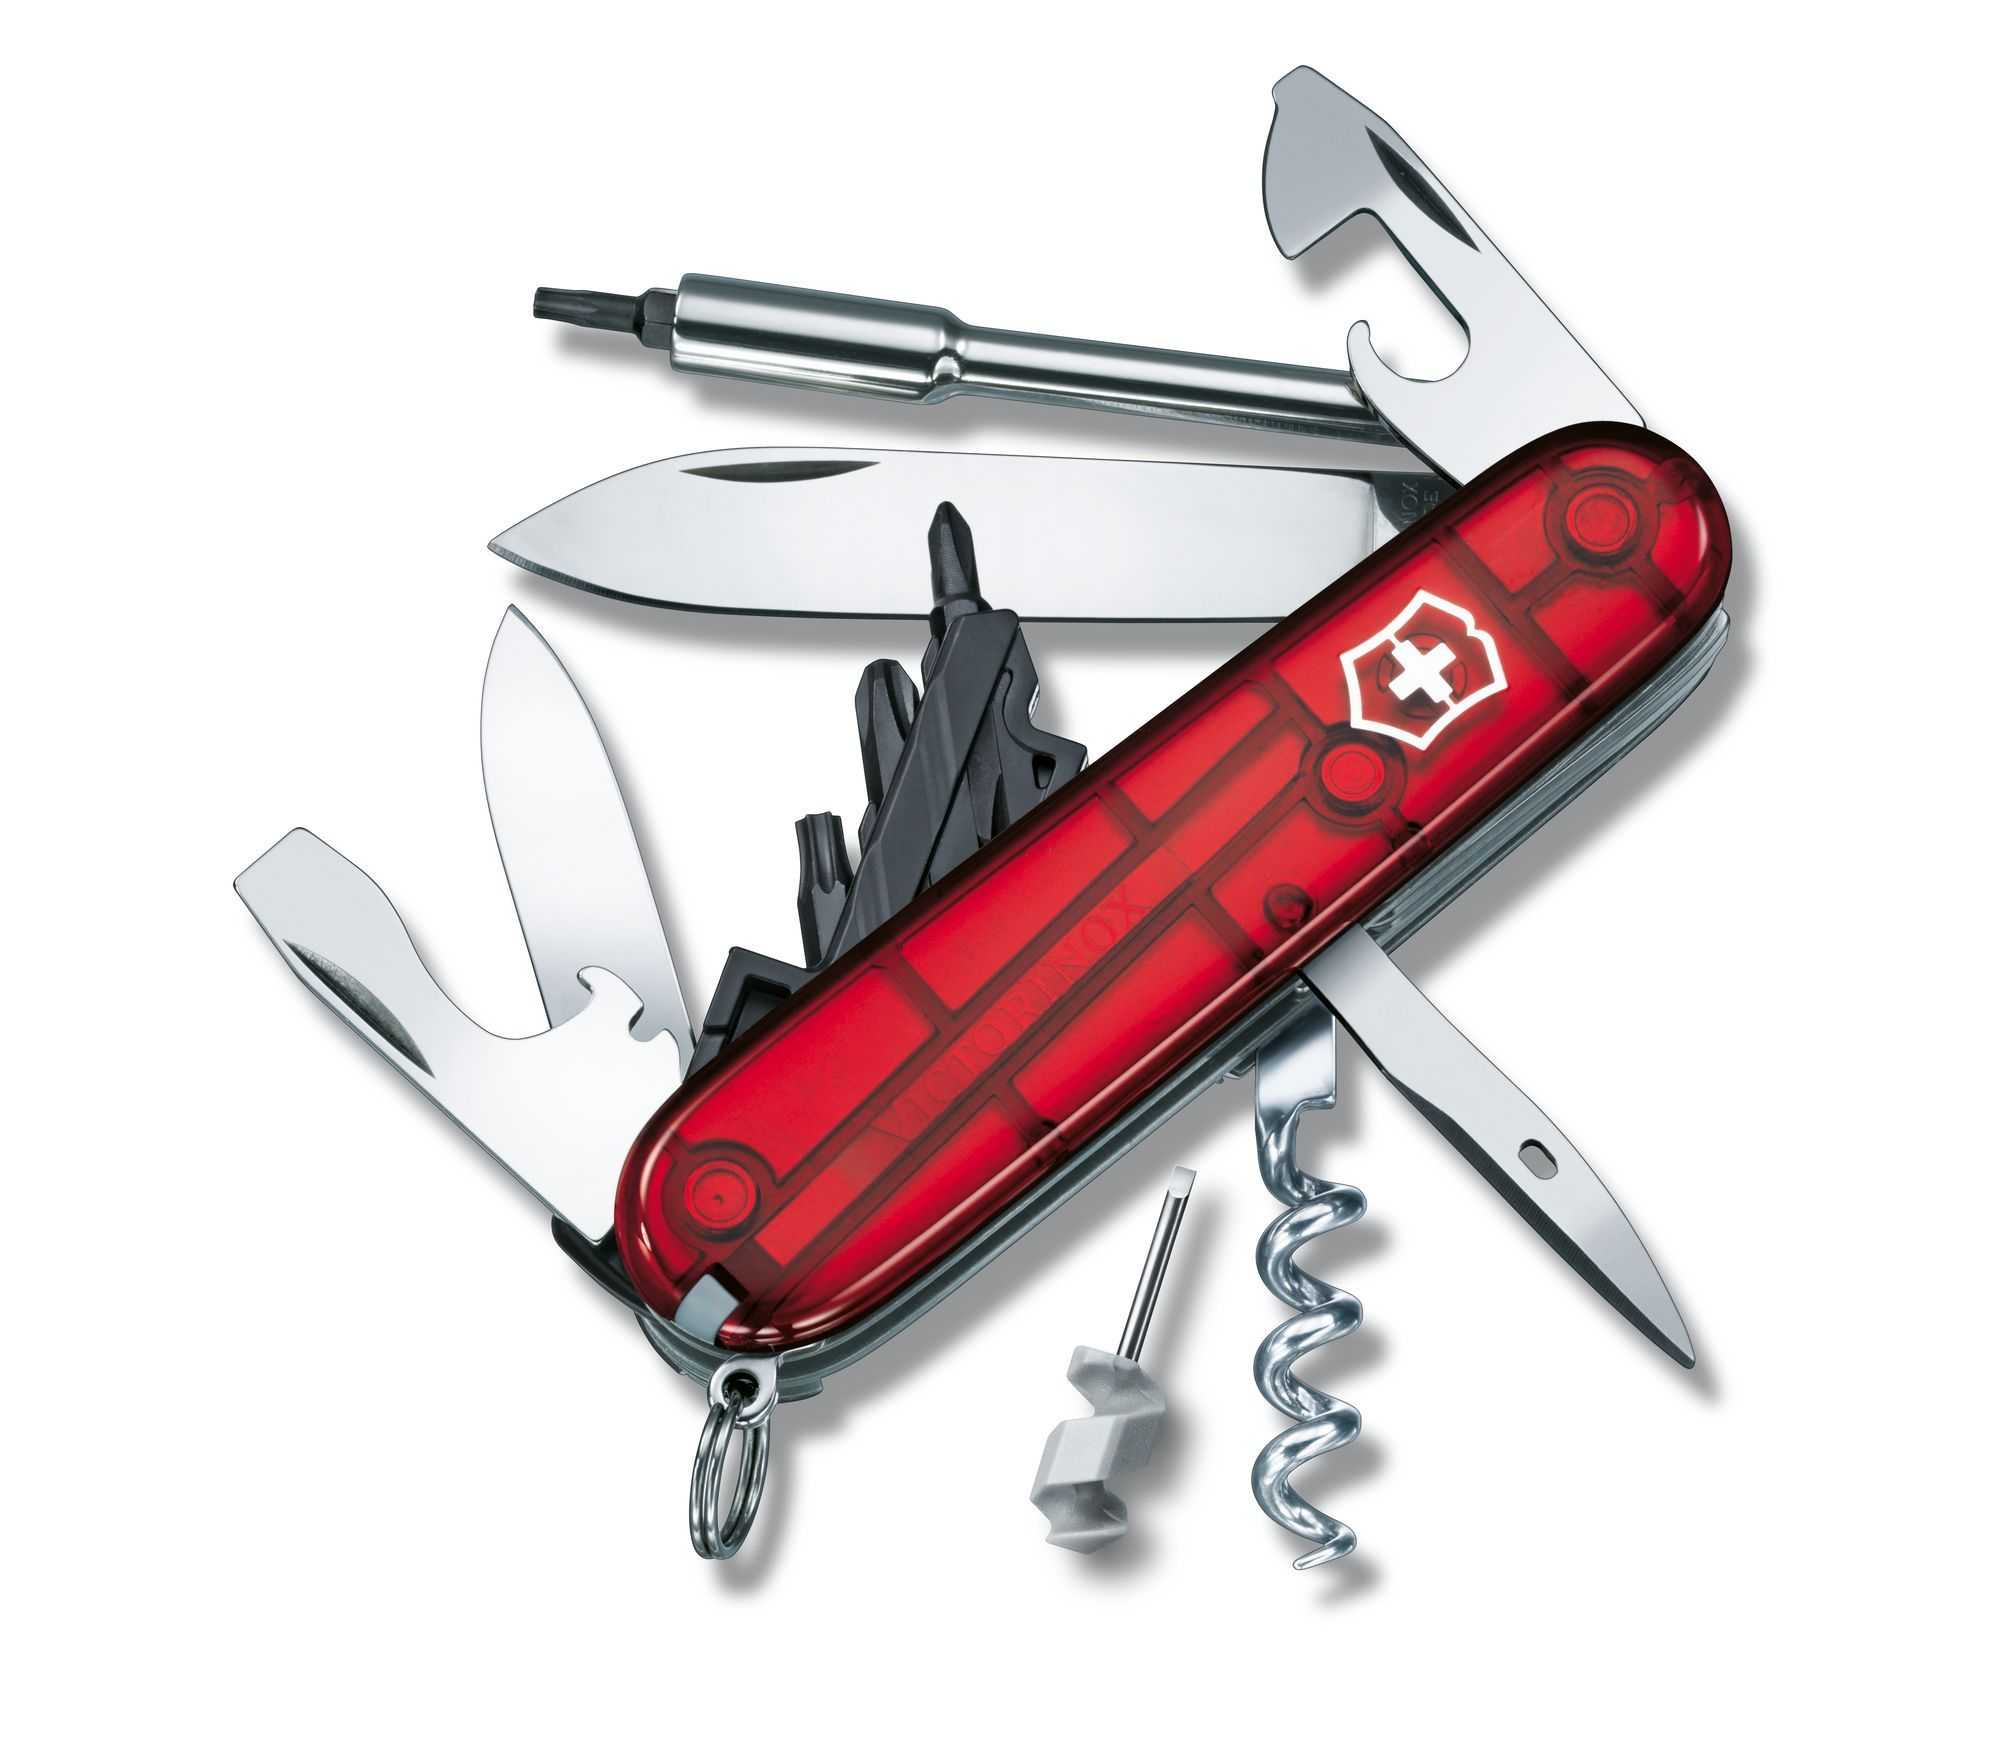 Check This Out Cybertool S In 2020 Victorinox Swiss Army Knife Swiss Army Pocket Knife Victorinox Knives